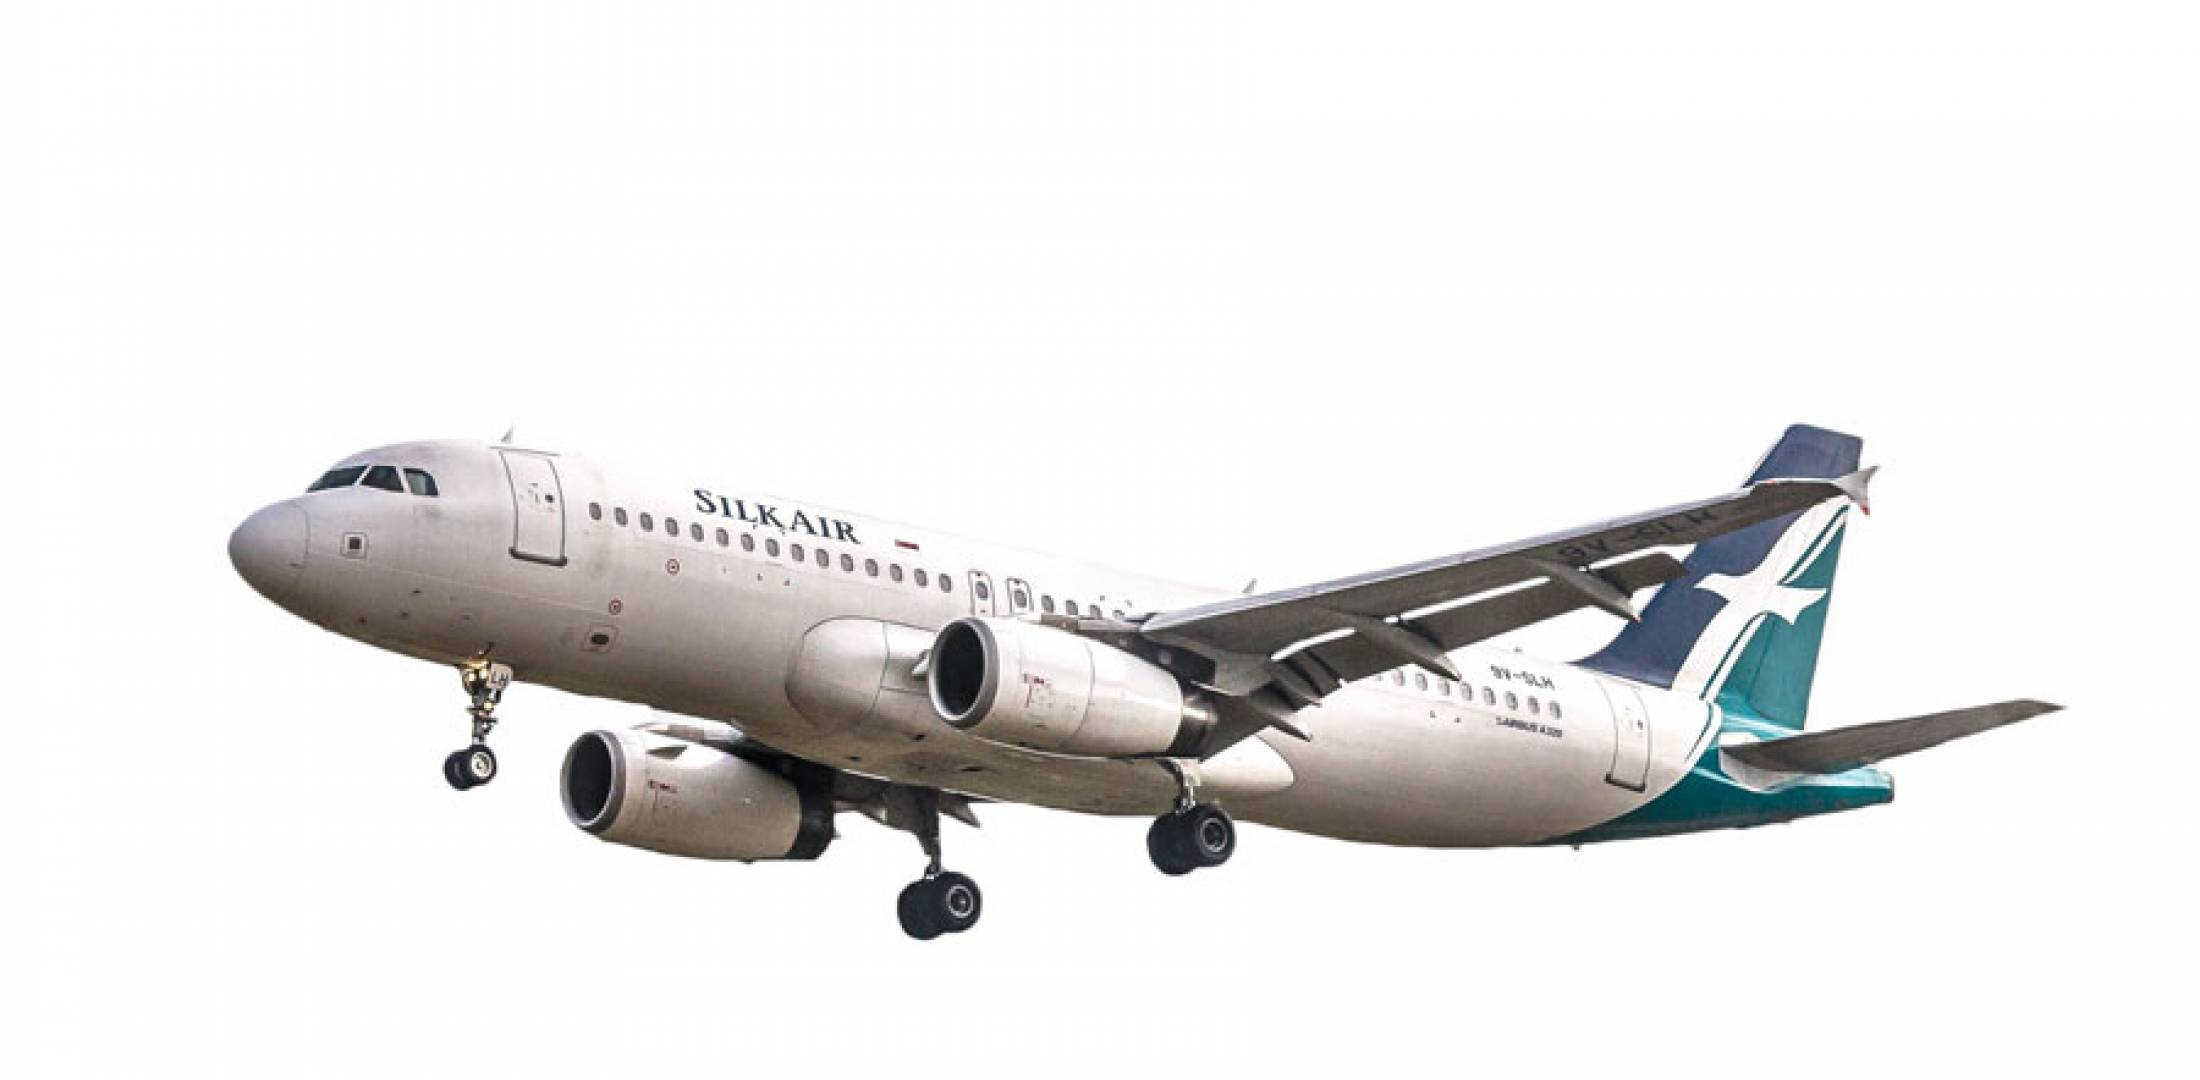 Regional subsidiaries of flag carriers were among the fastest growing operators in Southeast Asia for 2013, including Singapore Airlines' SilkAir.